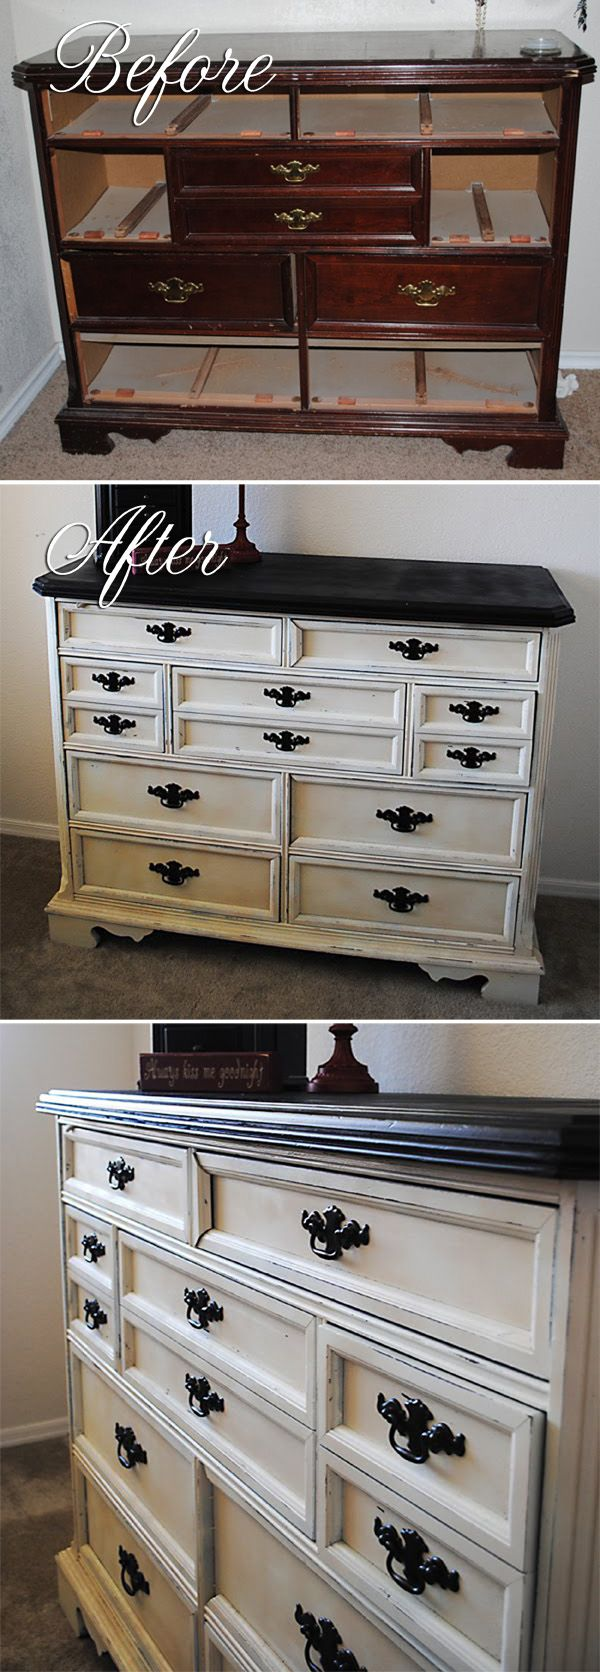 DISTRESSING :: Lovely distressed dresser makeover :: She used Krylon Ivory for the dresser and Oil Rubbed Bronze(ORB) for the handles. | #classyclutter